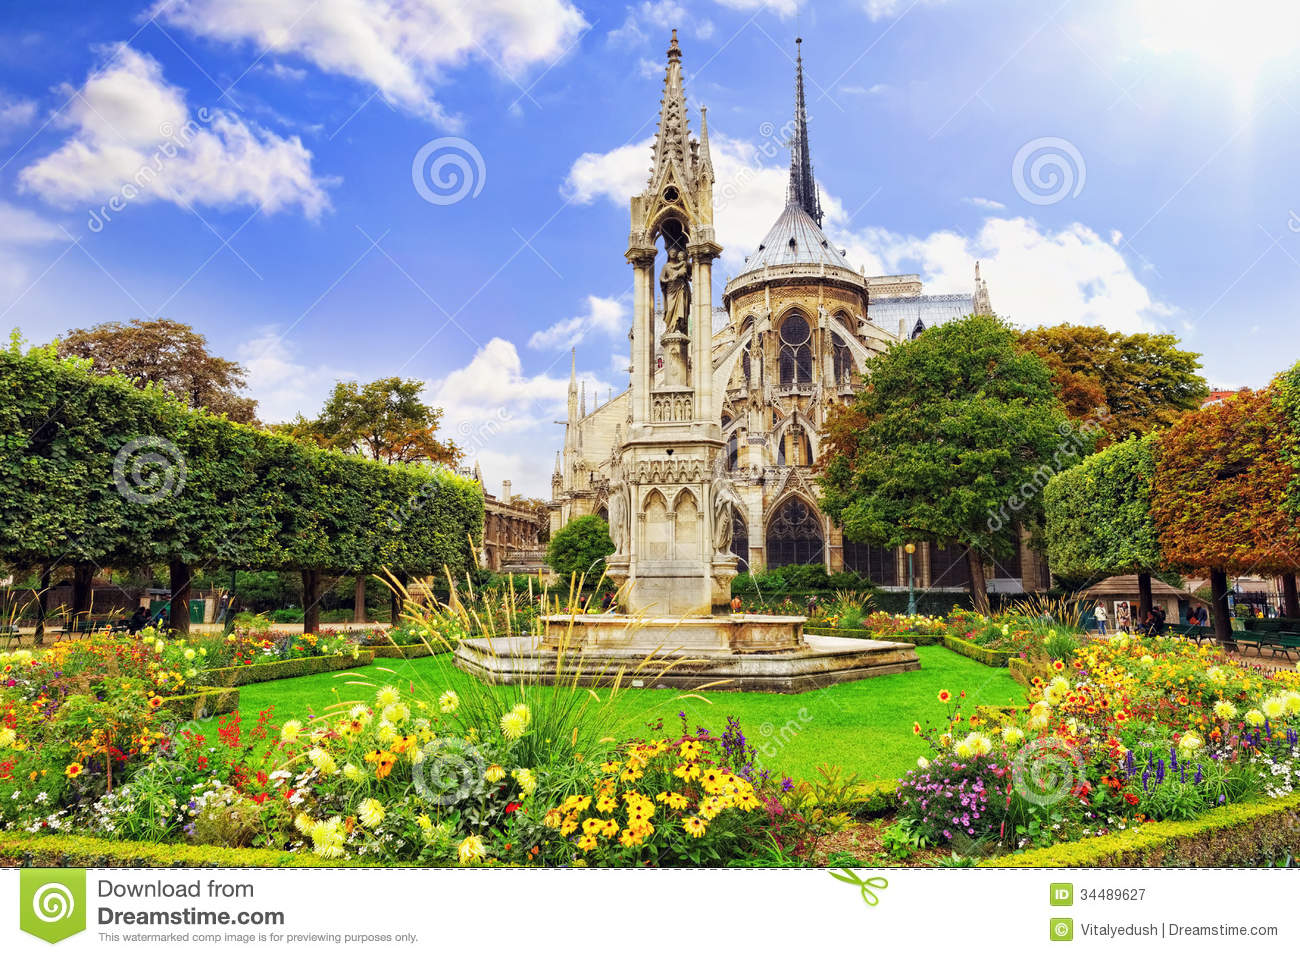 Notre Dame De Paris Cathedral Royalty Free Stock